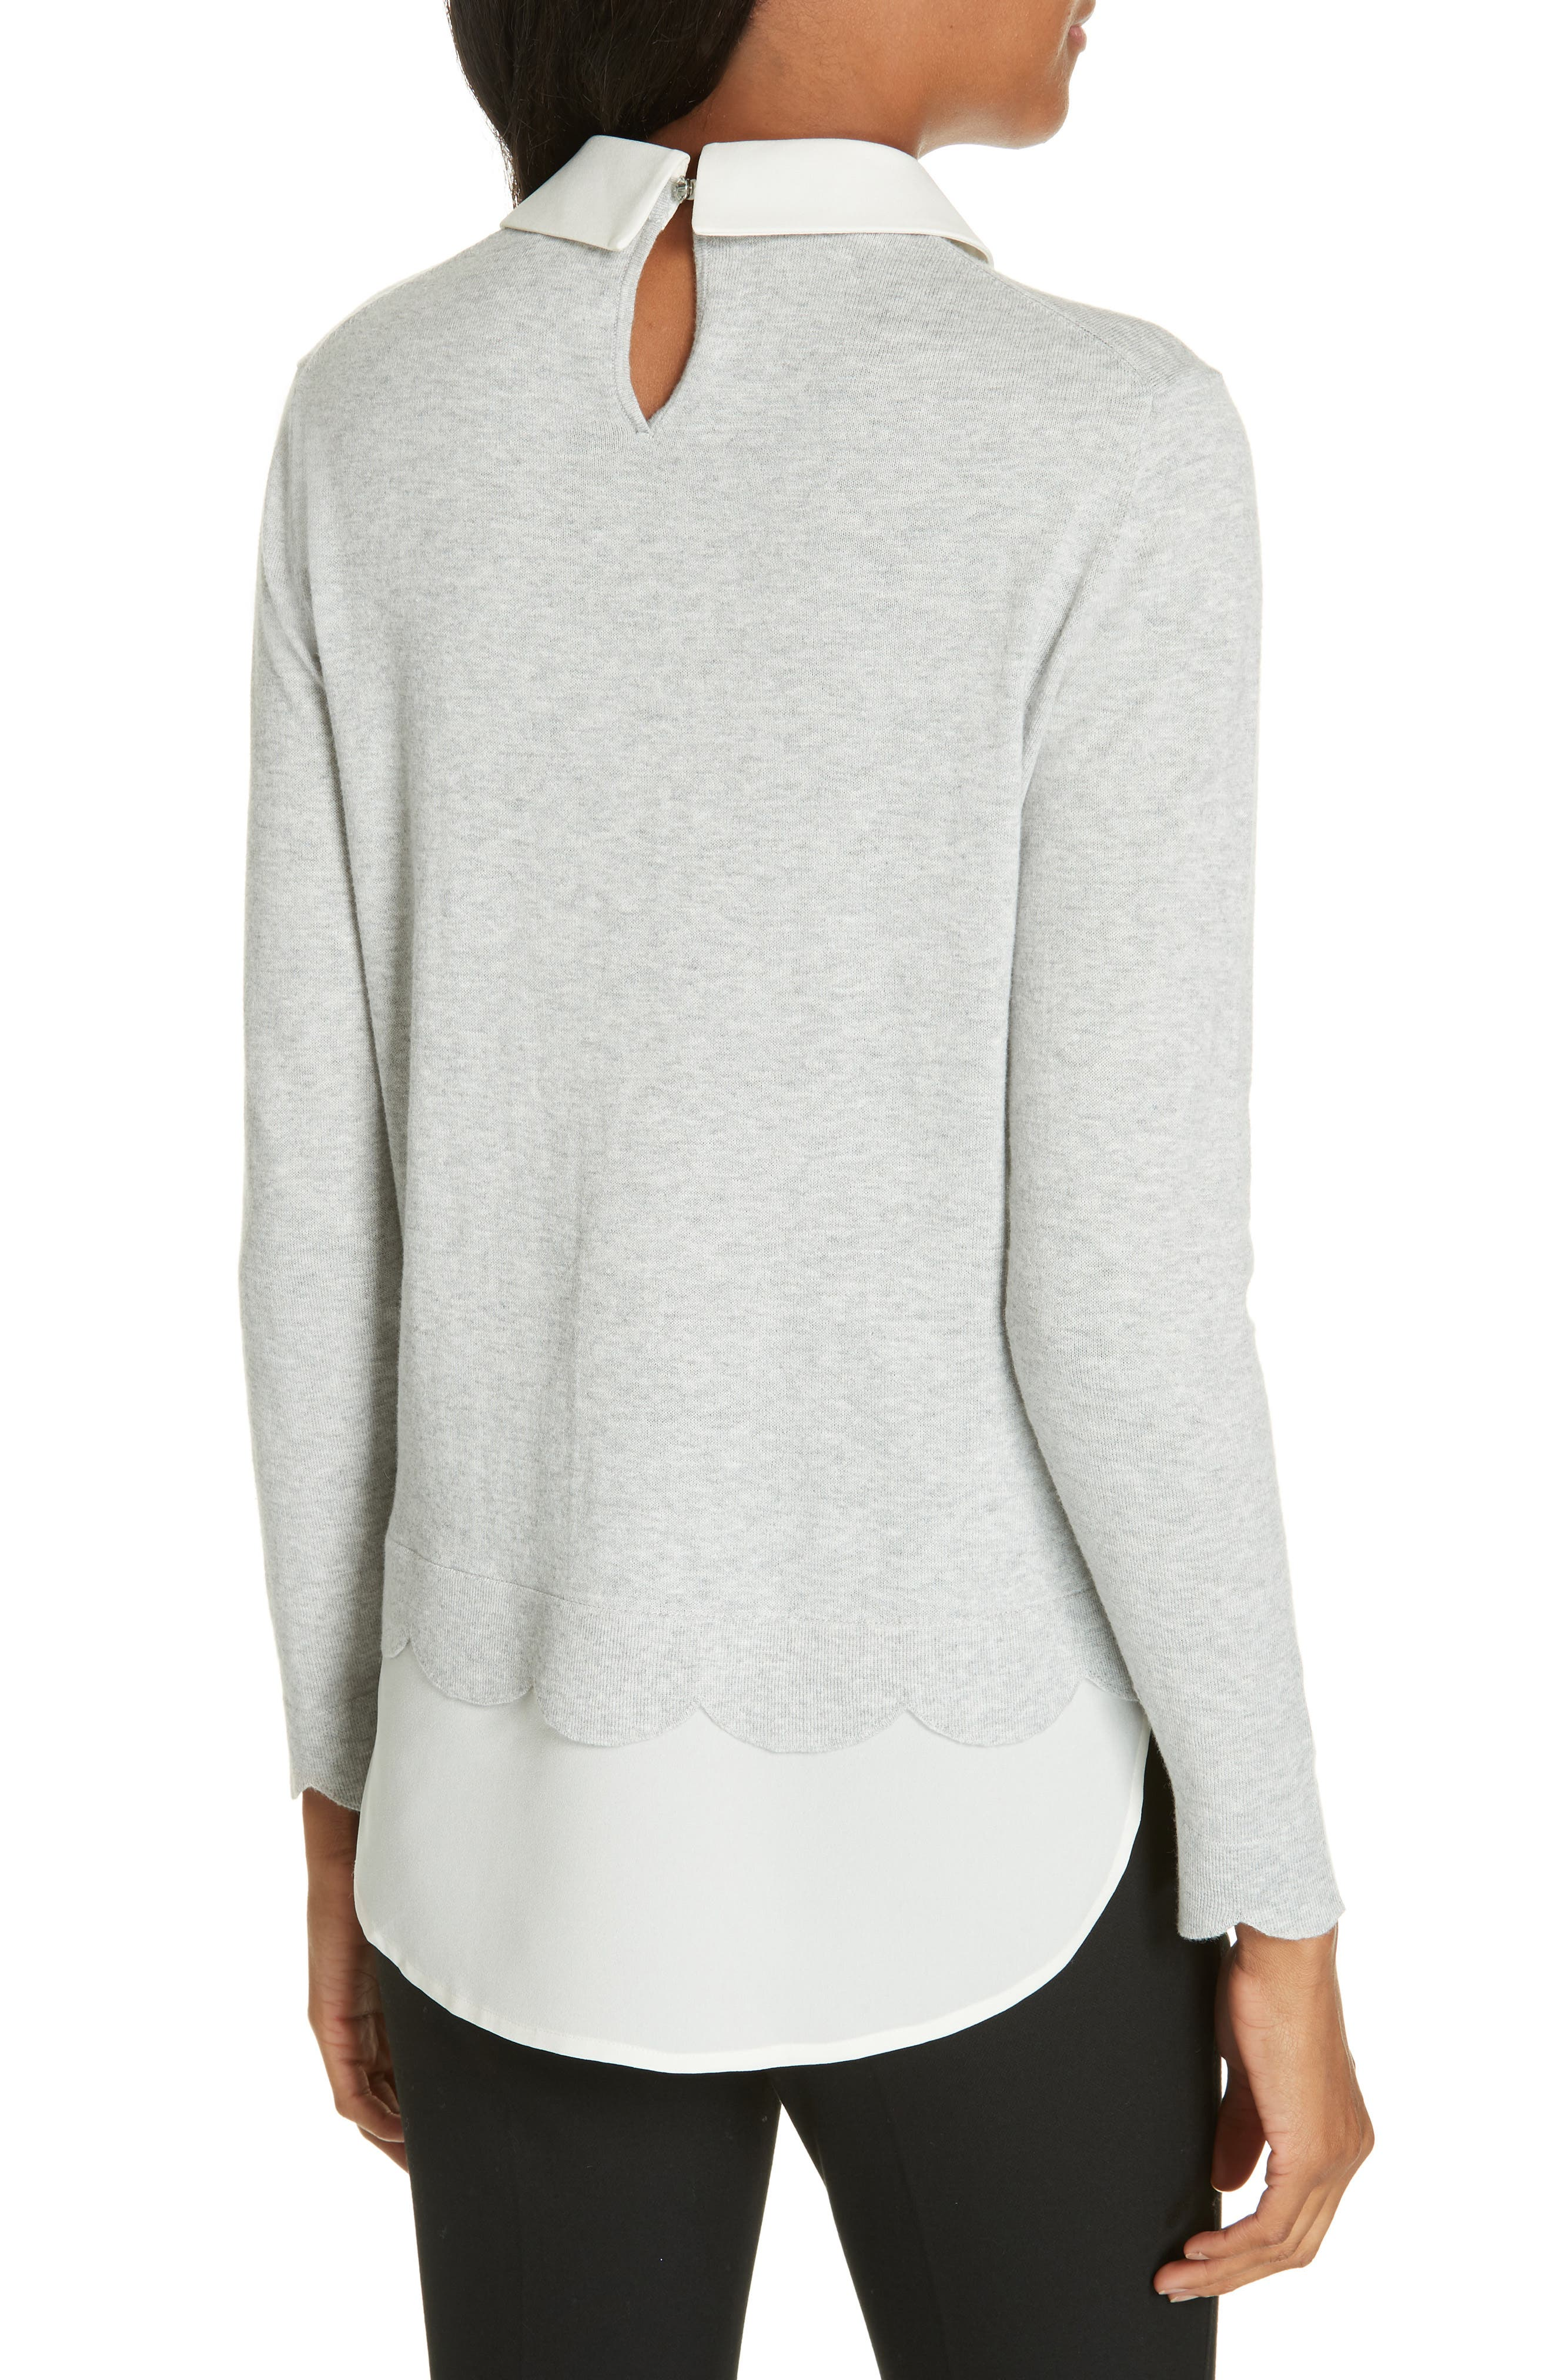 Suzaine Layered Sweater,                             Alternate thumbnail 2, color,                             GREY